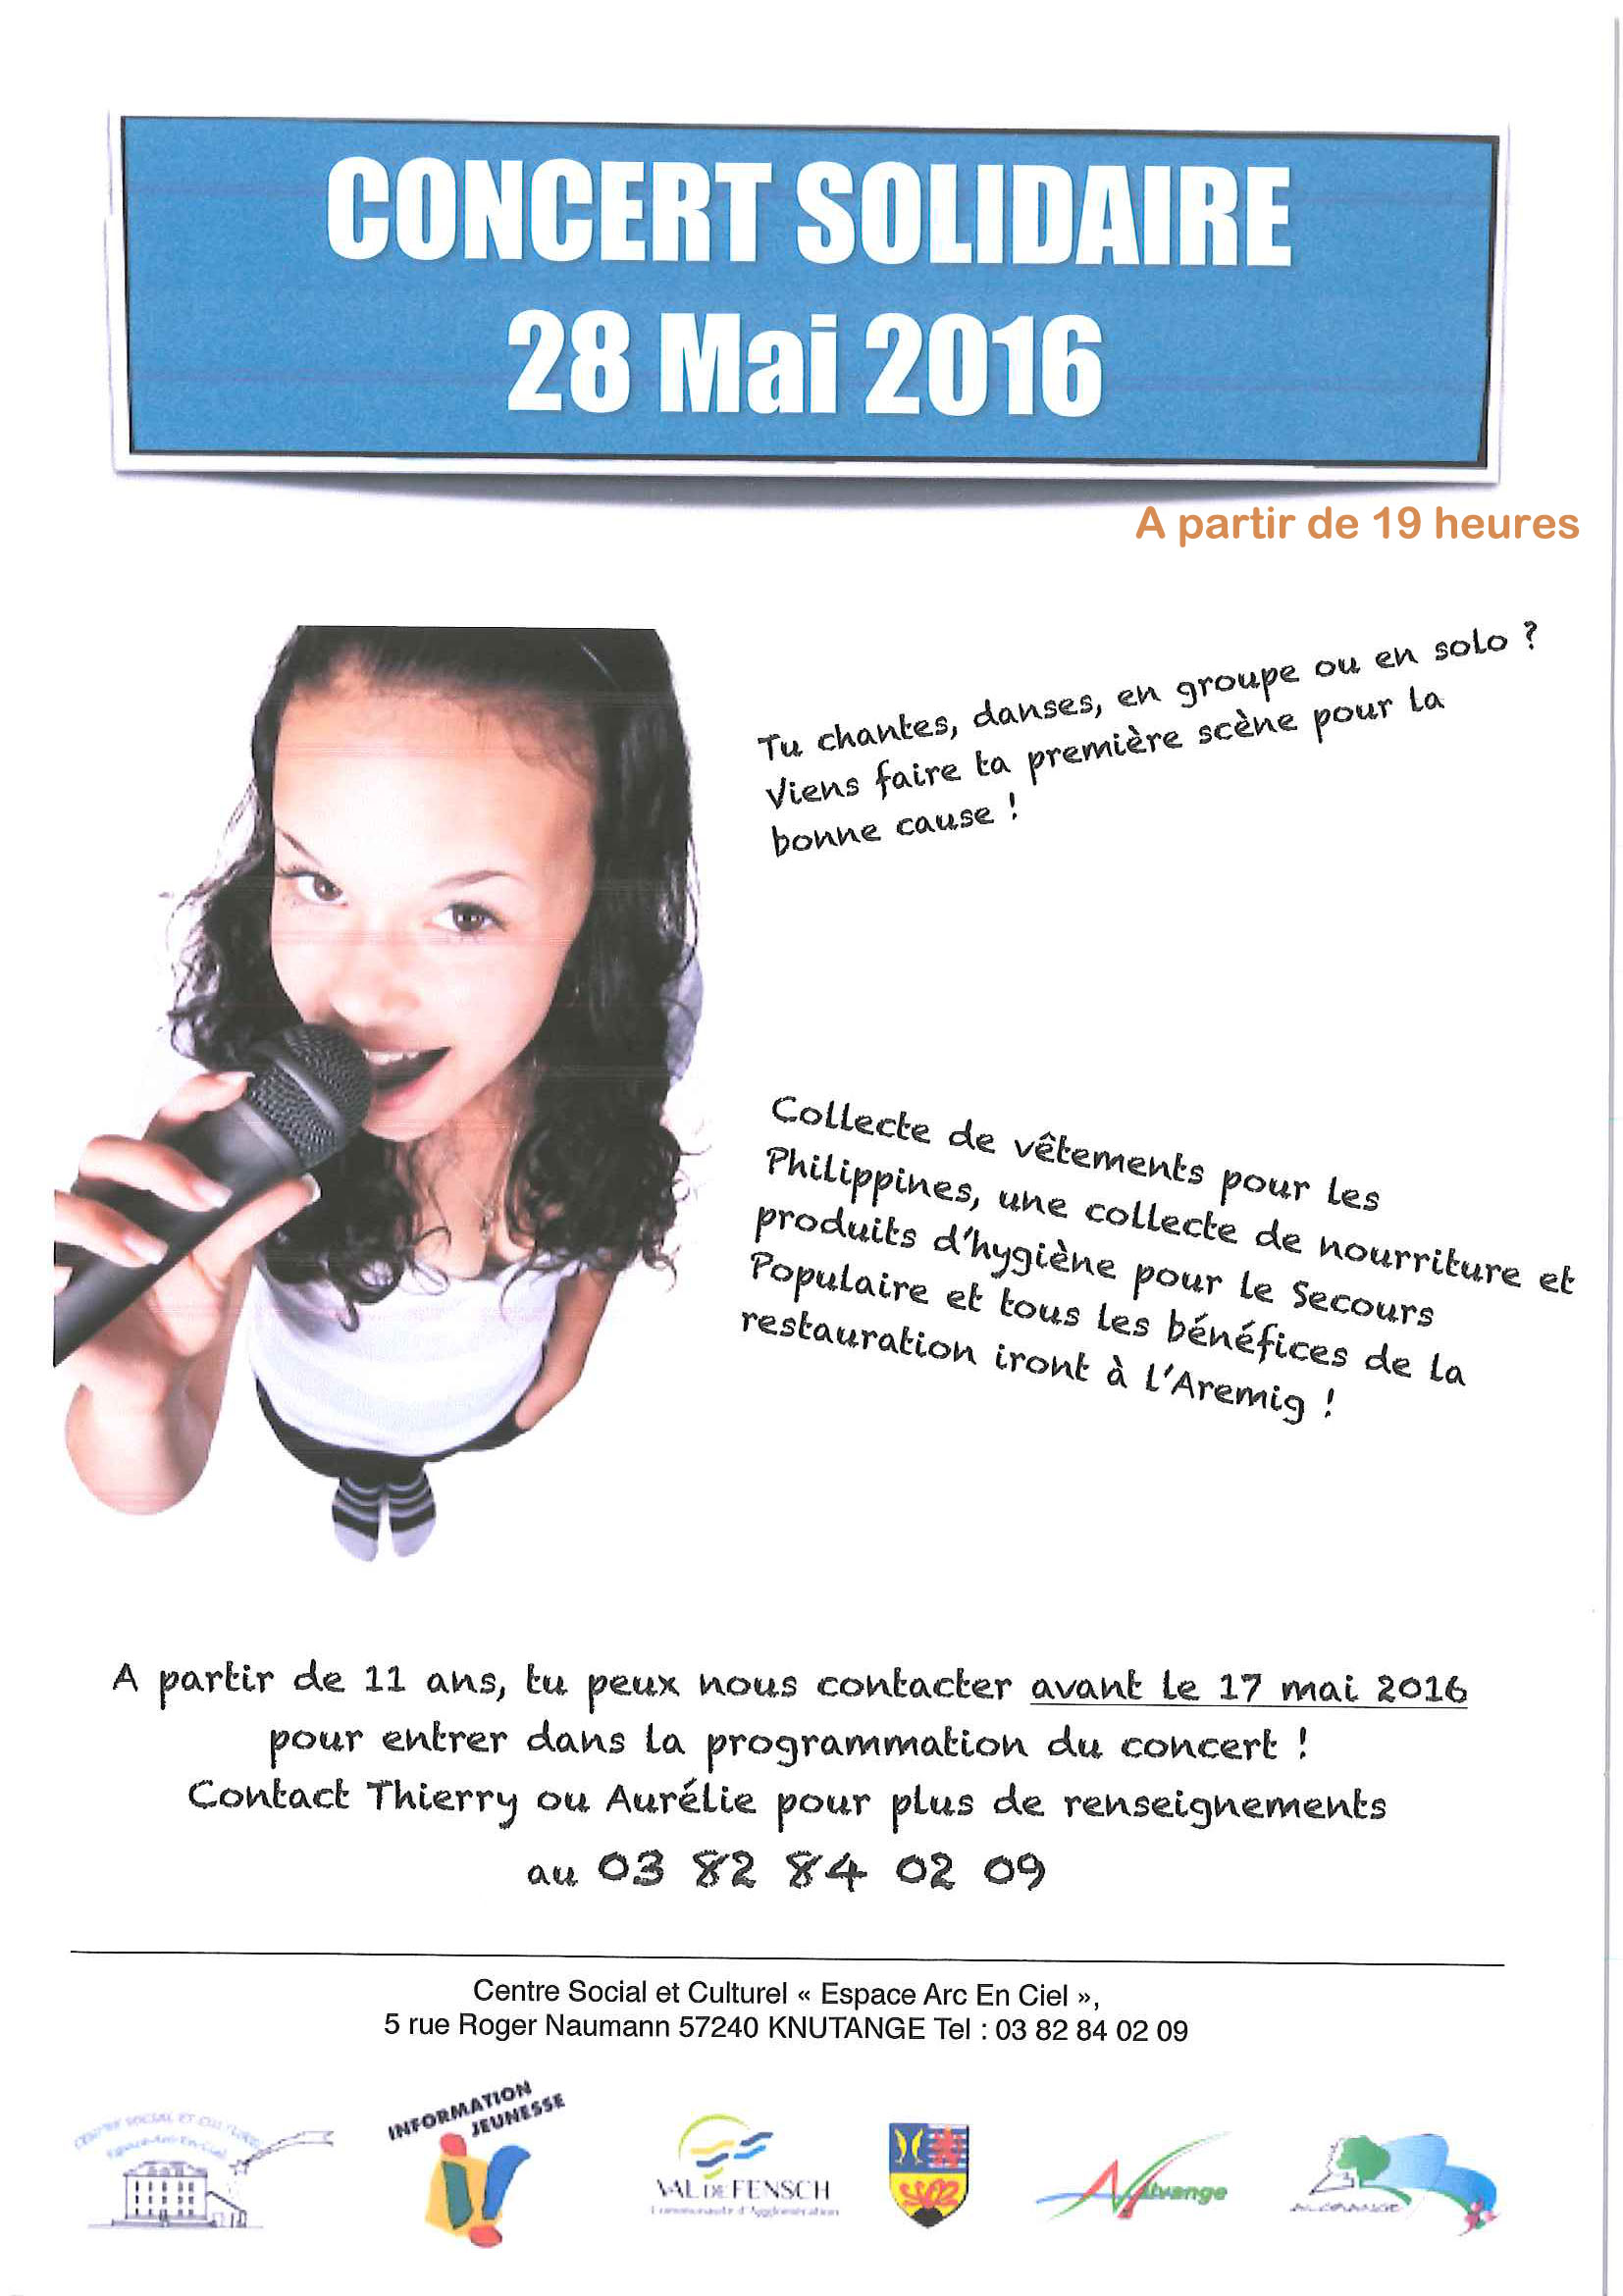 CONCERT-SOLIDAIRE-28-MAI-2016